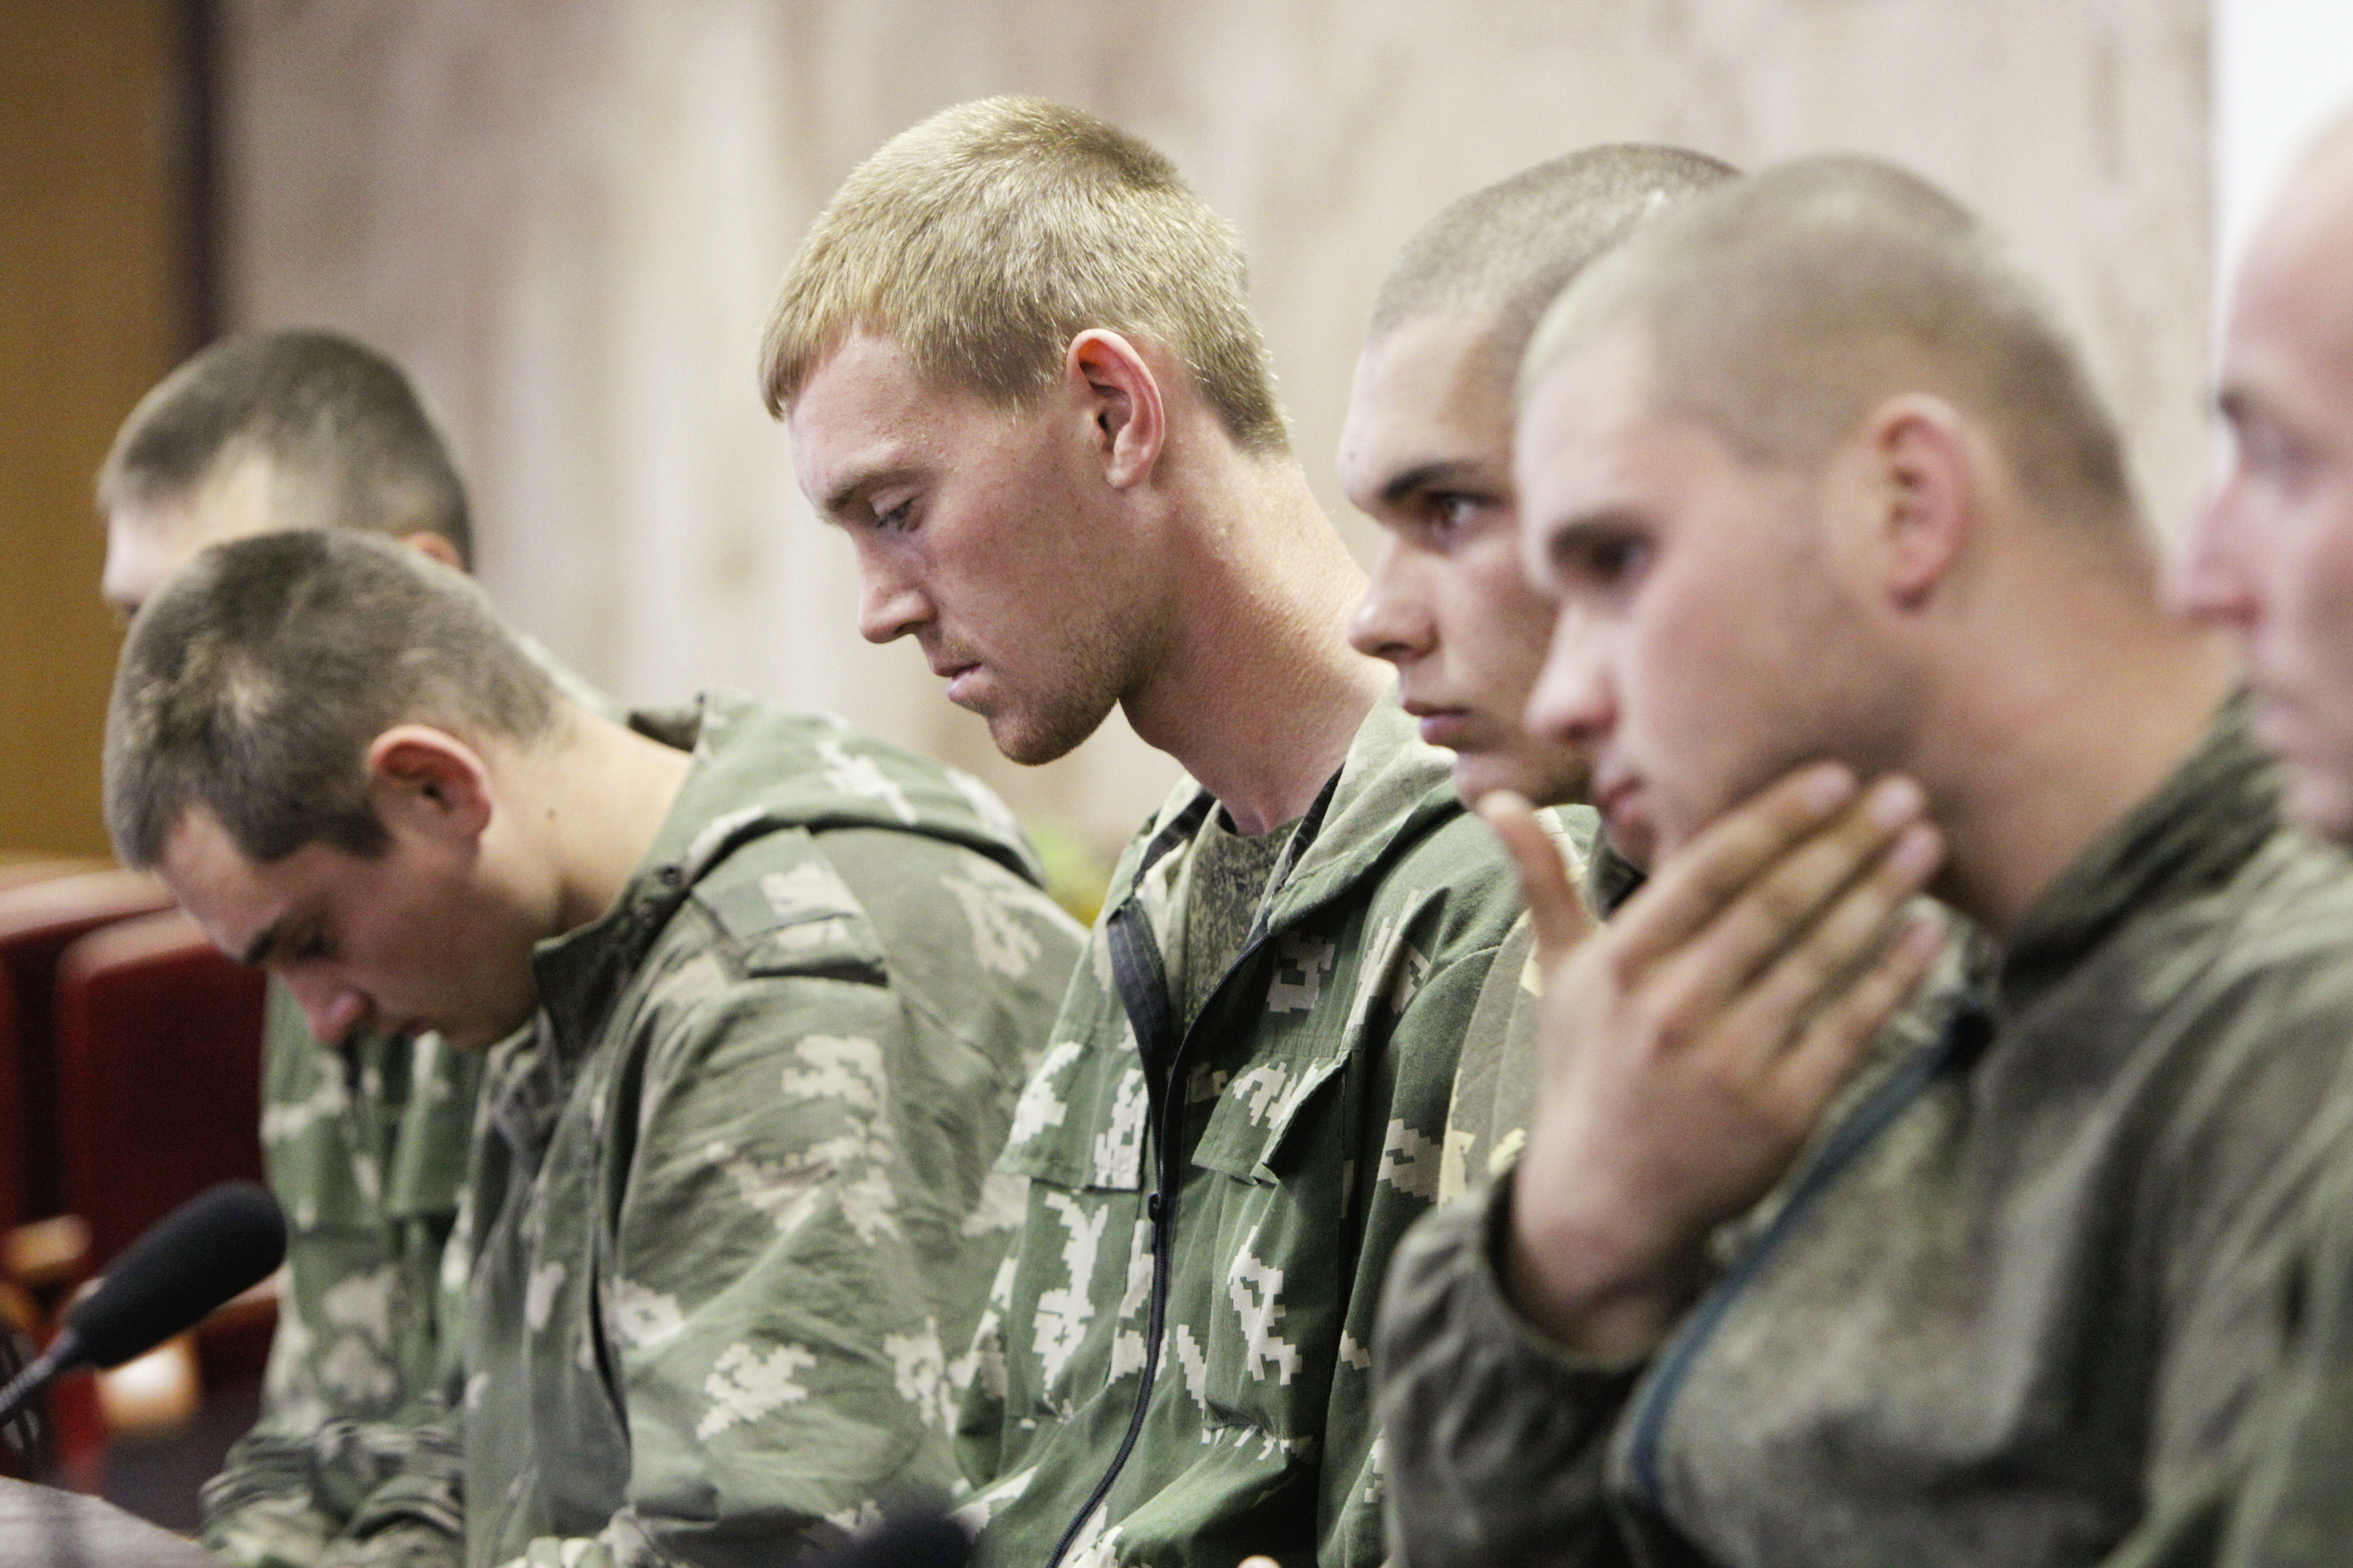 A group of Russian servicemen, taken prisoner by Ukrainian authorities, are presented at a news conference in Kiev on Aug. 27, 2014. Ukraine said on Tuesday its forces had captured a group of Russian paratroopers who had crossed into Ukrainian territory on a  special mission,  but Moscow said they had ended up there by mistake